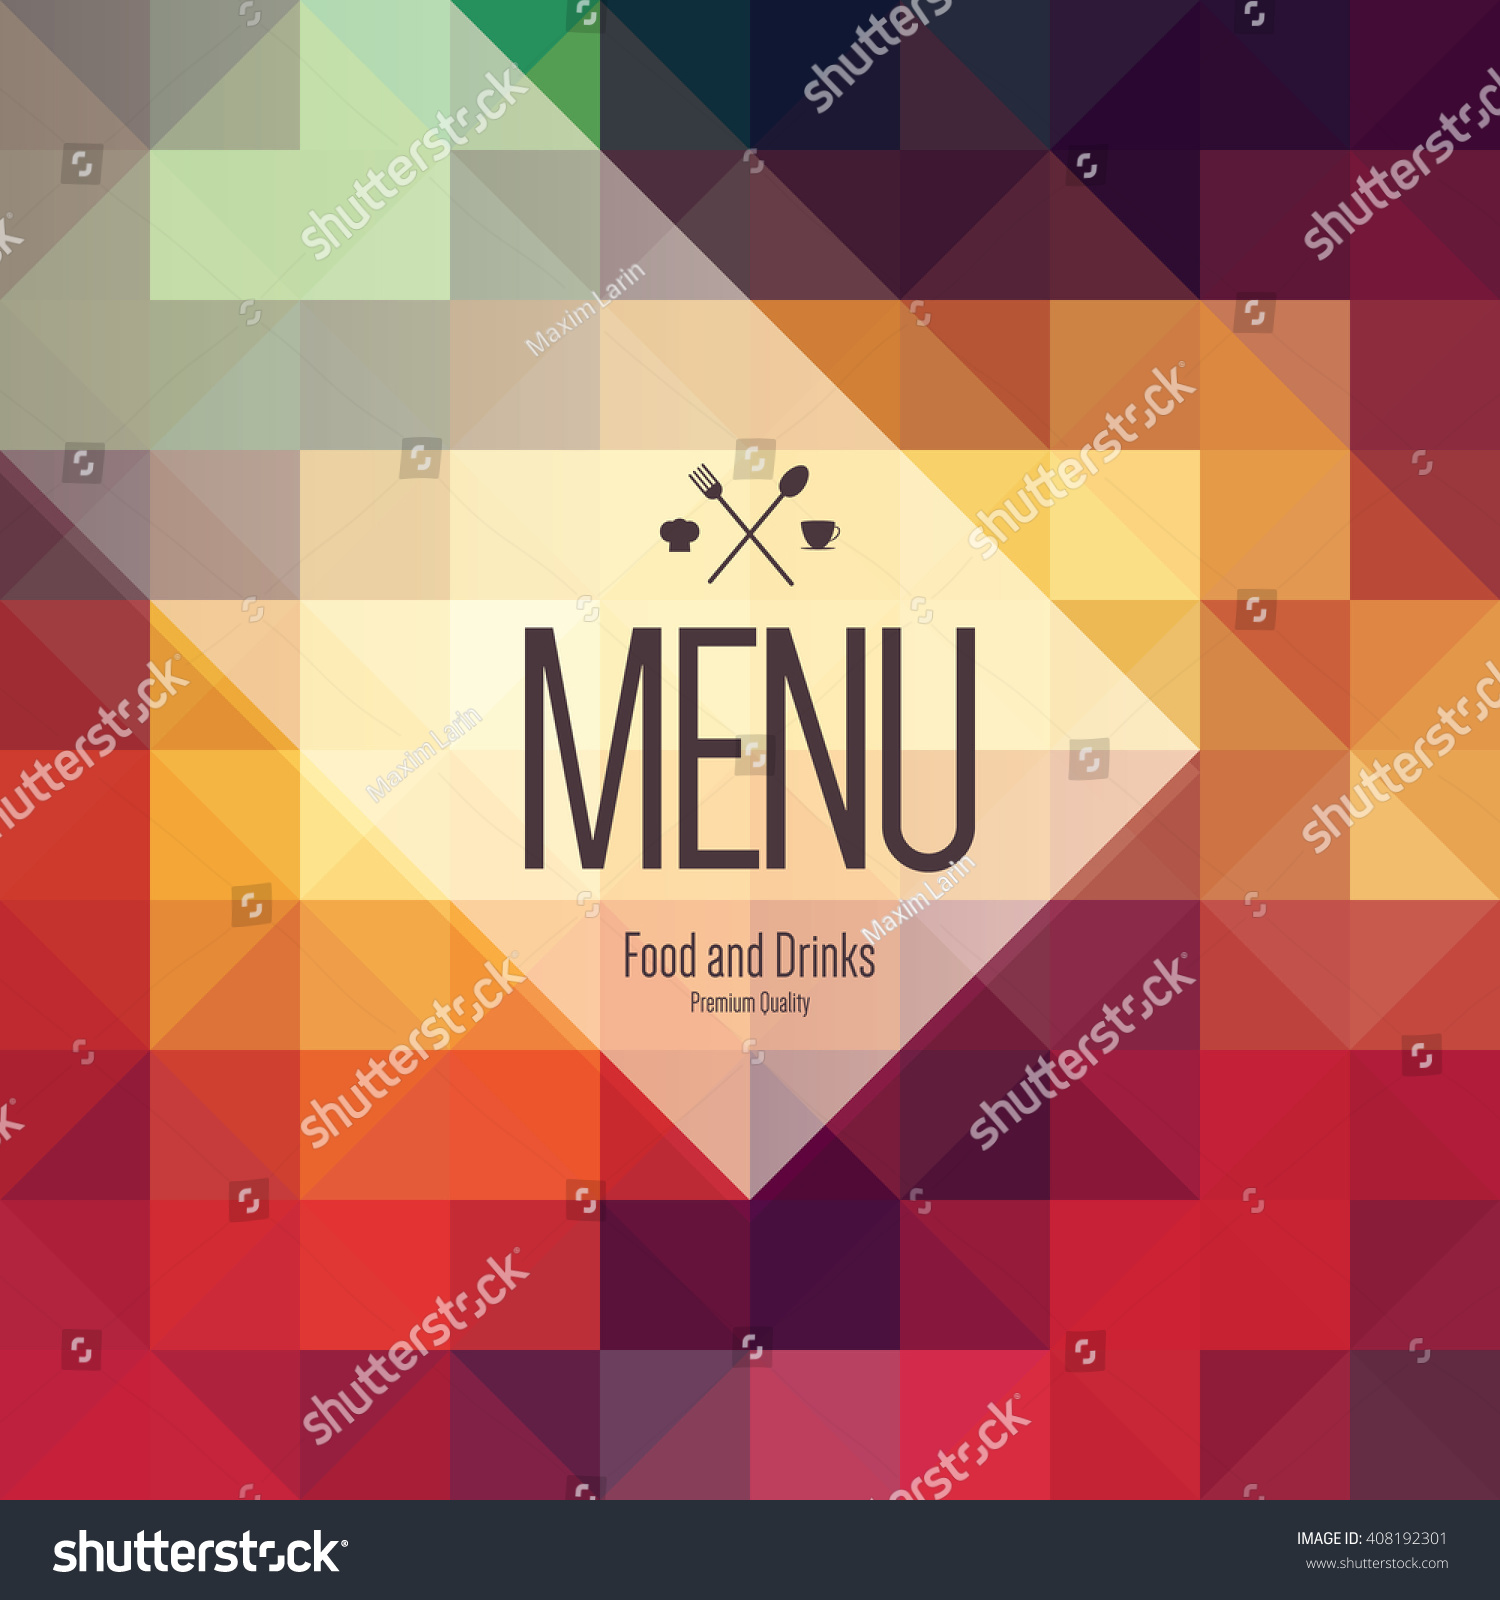 restaurant menu design vector menu brochure template for cafe save to a lightbox